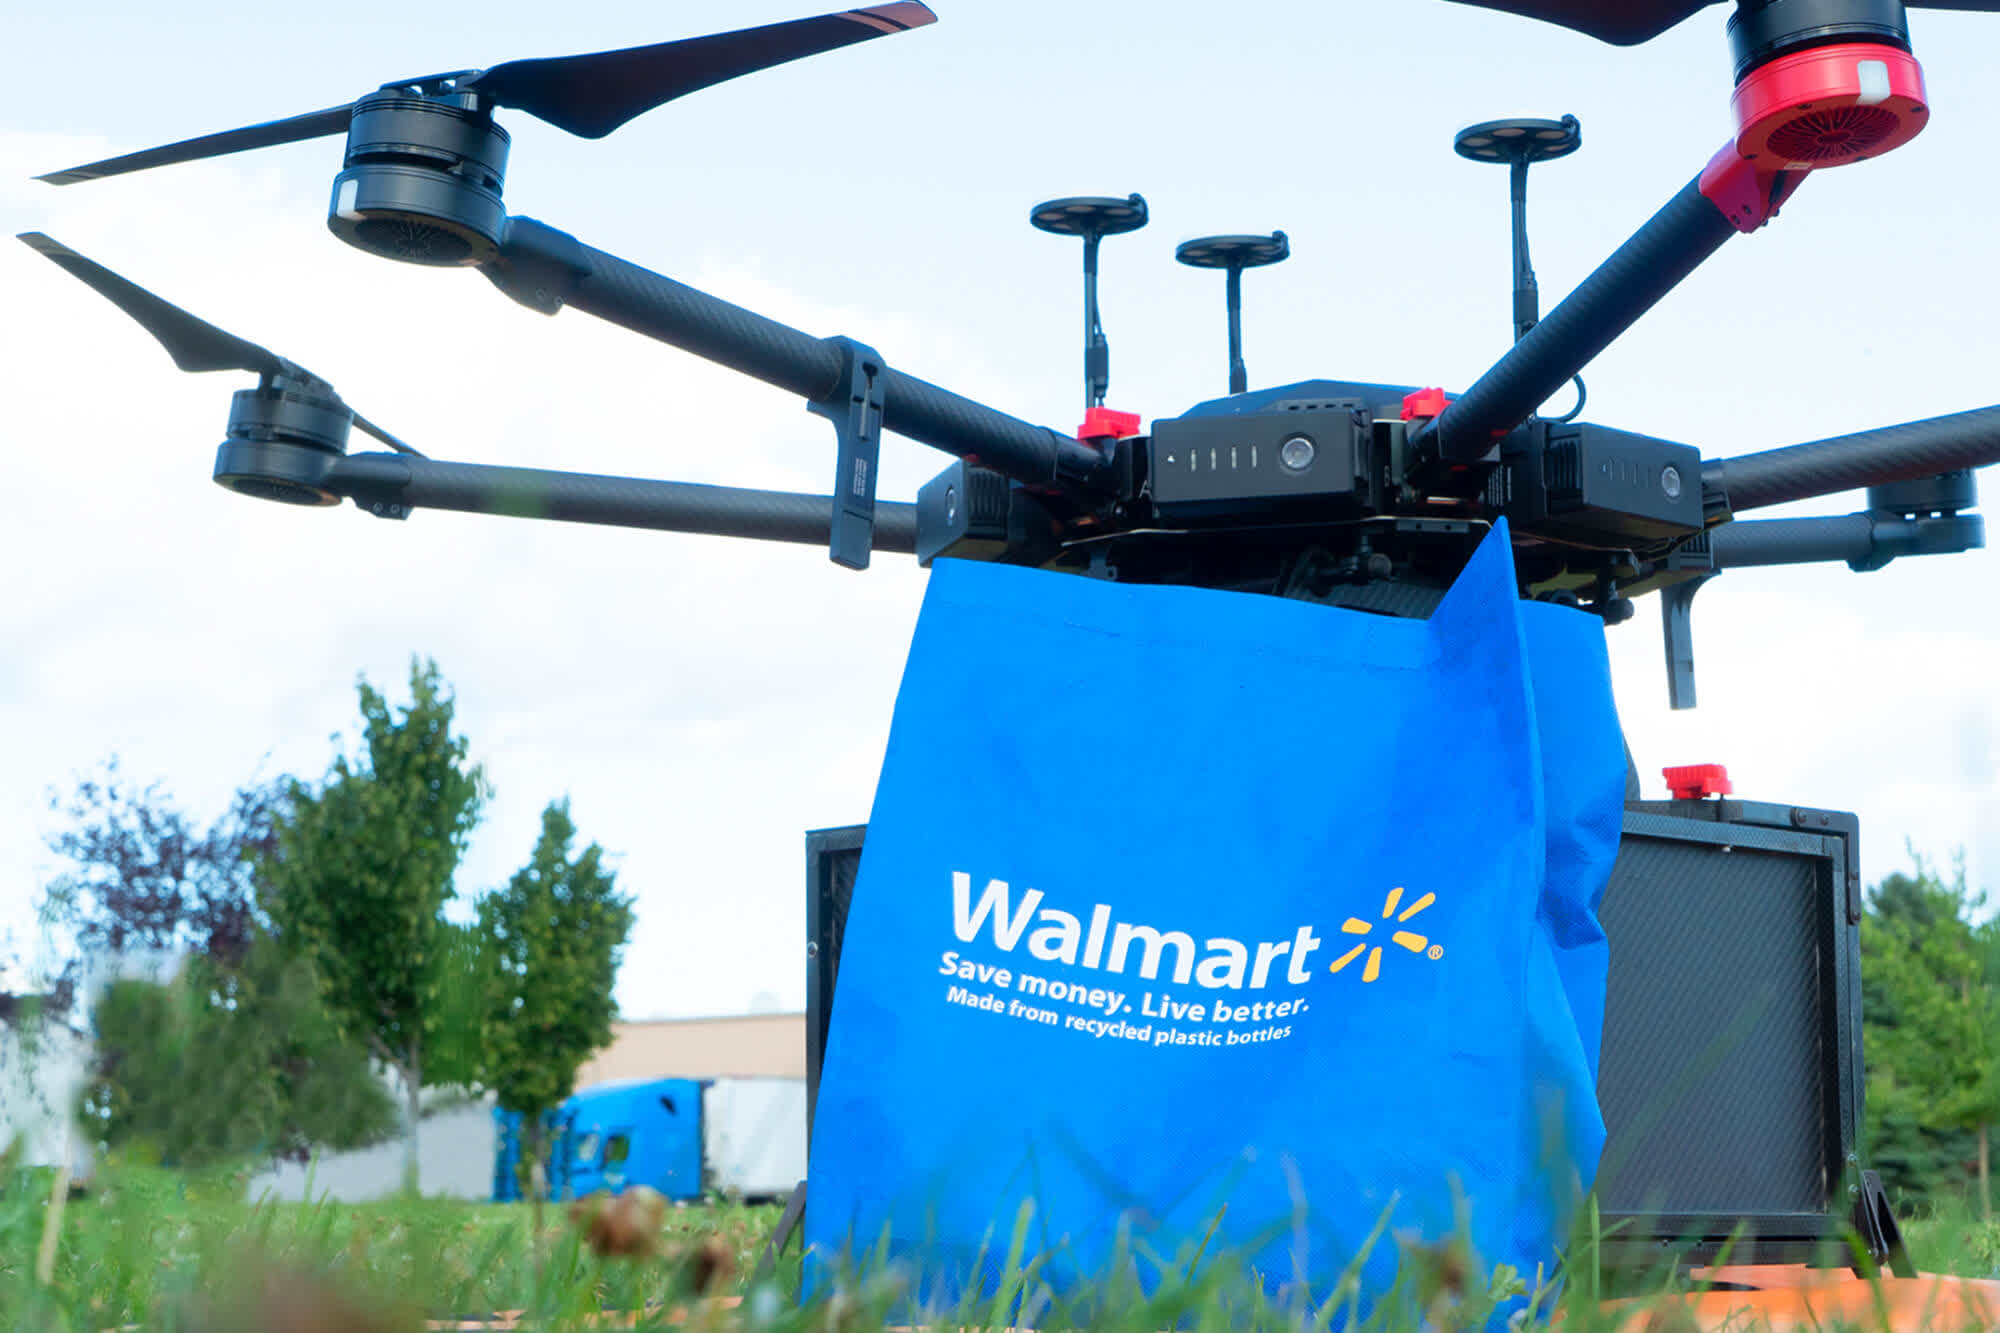 Walmart is testing drones to deliver orders to shoppers